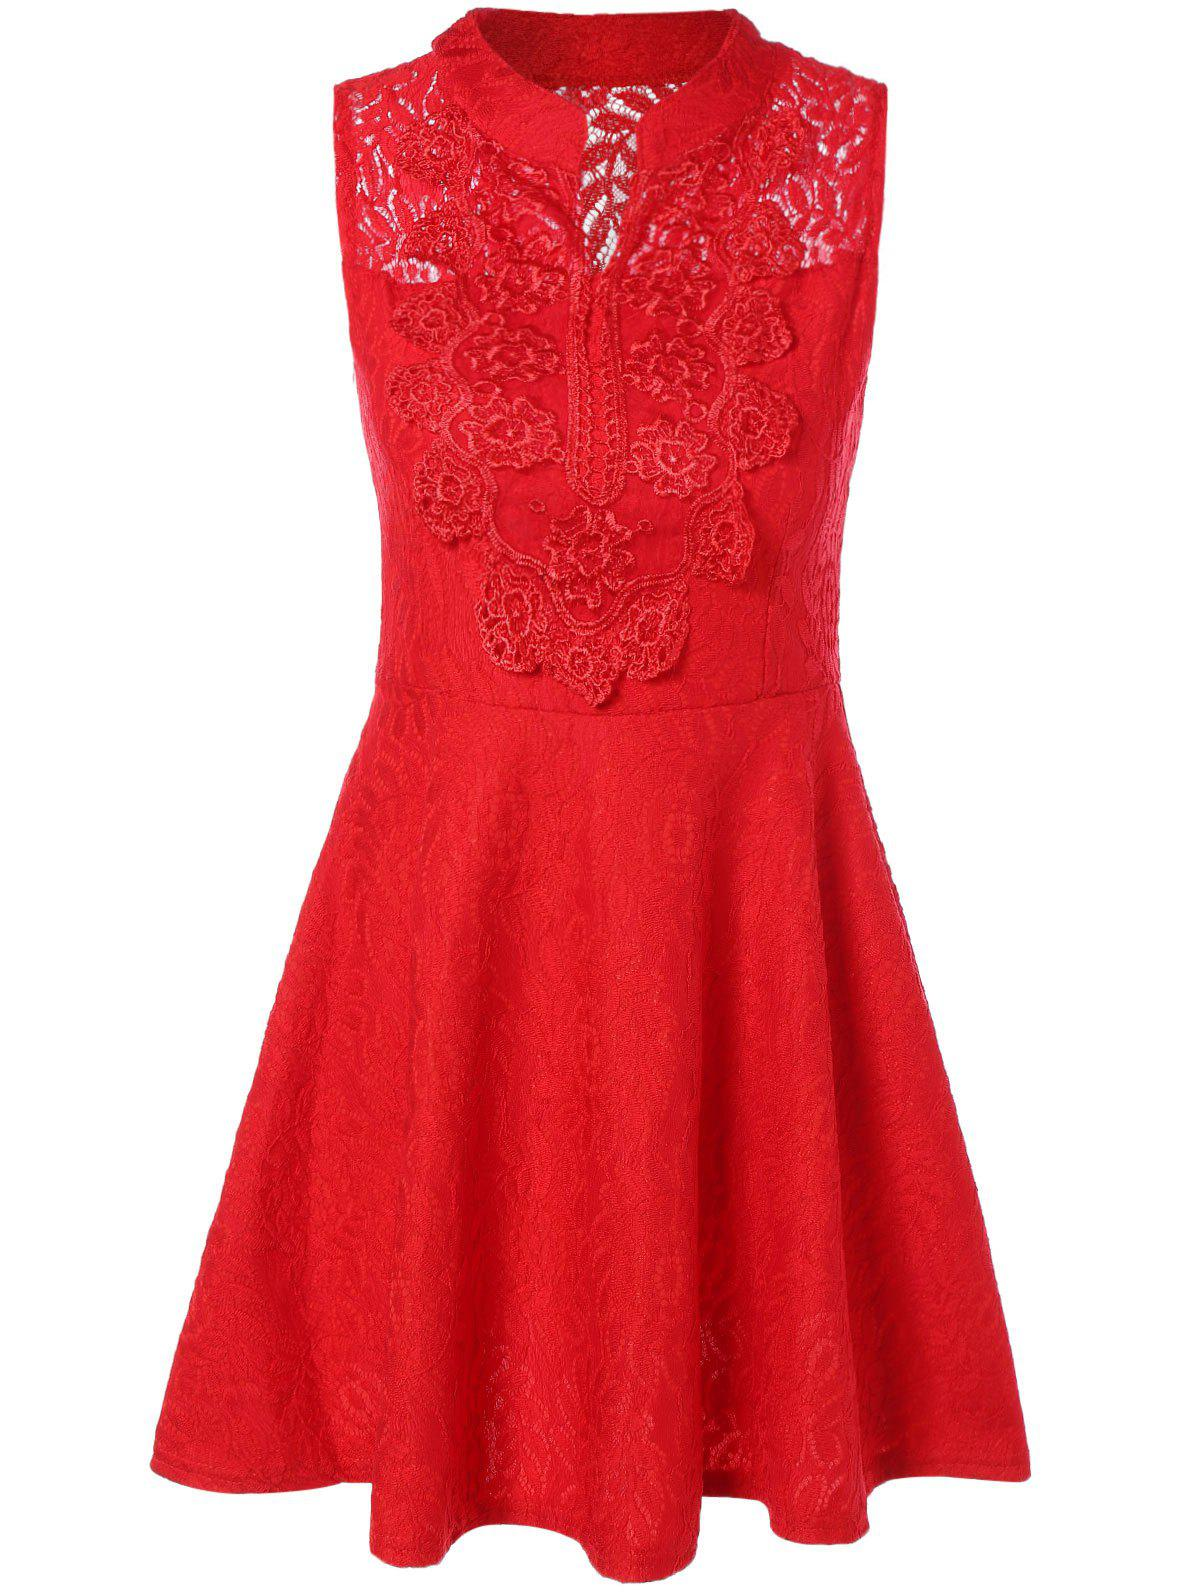 Buy Sleevless Applique Laciness Dress RED